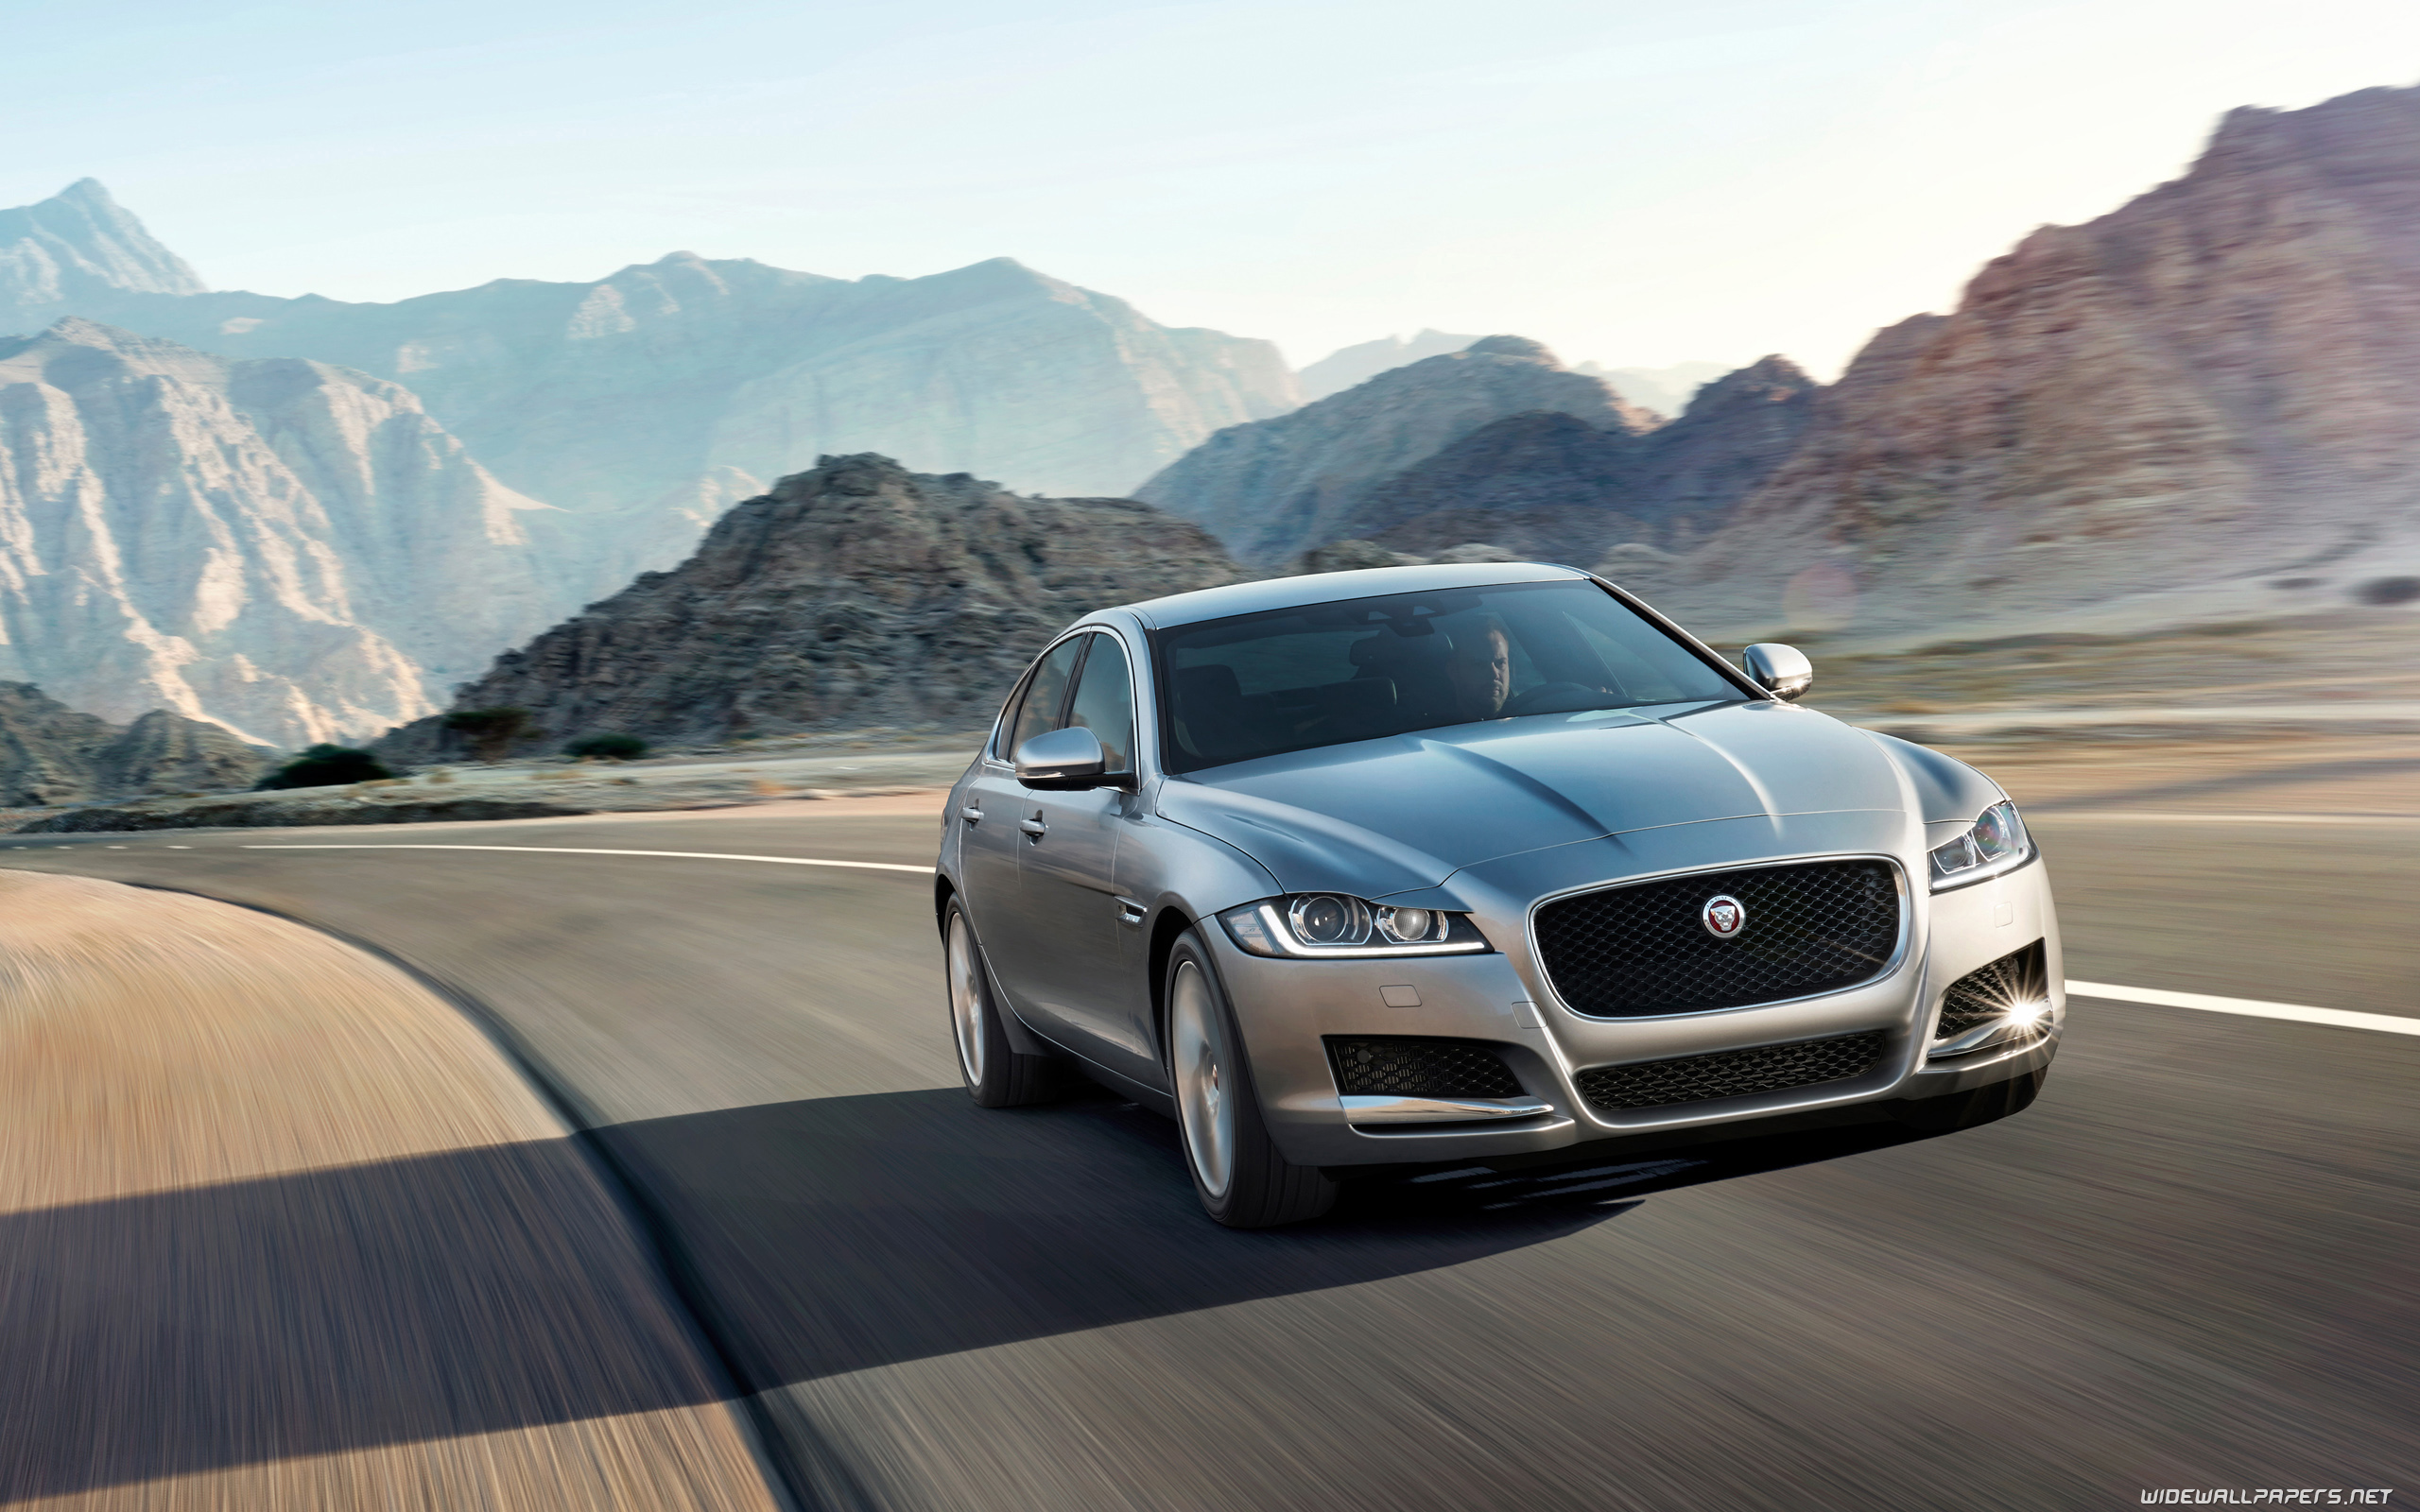 Wallpapers 4K Ultra HD Jaguar XF Prestige 2560x1440 2560x1600 3840x2160